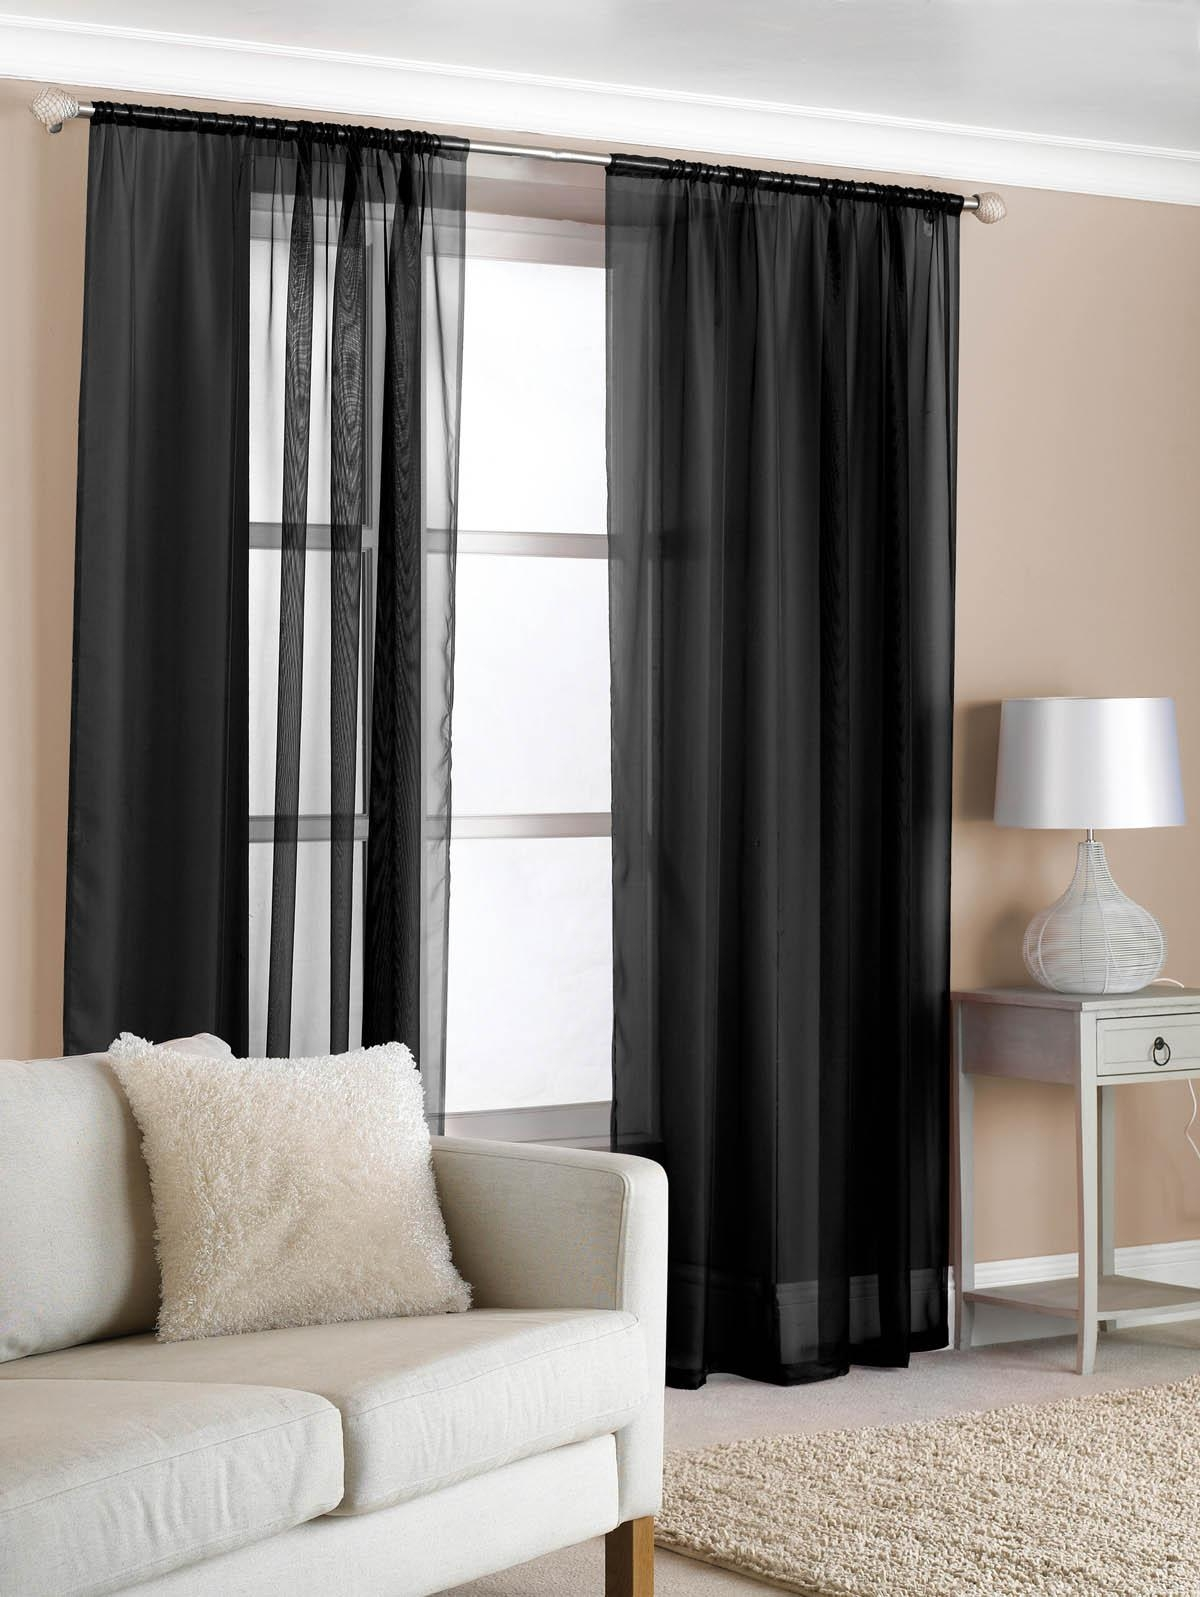 Curtains Modern Kitchen 3d Render Grey Sheer Curtains Lovable Within Dark Grey Sheer Curtains (Image 14 of 25)